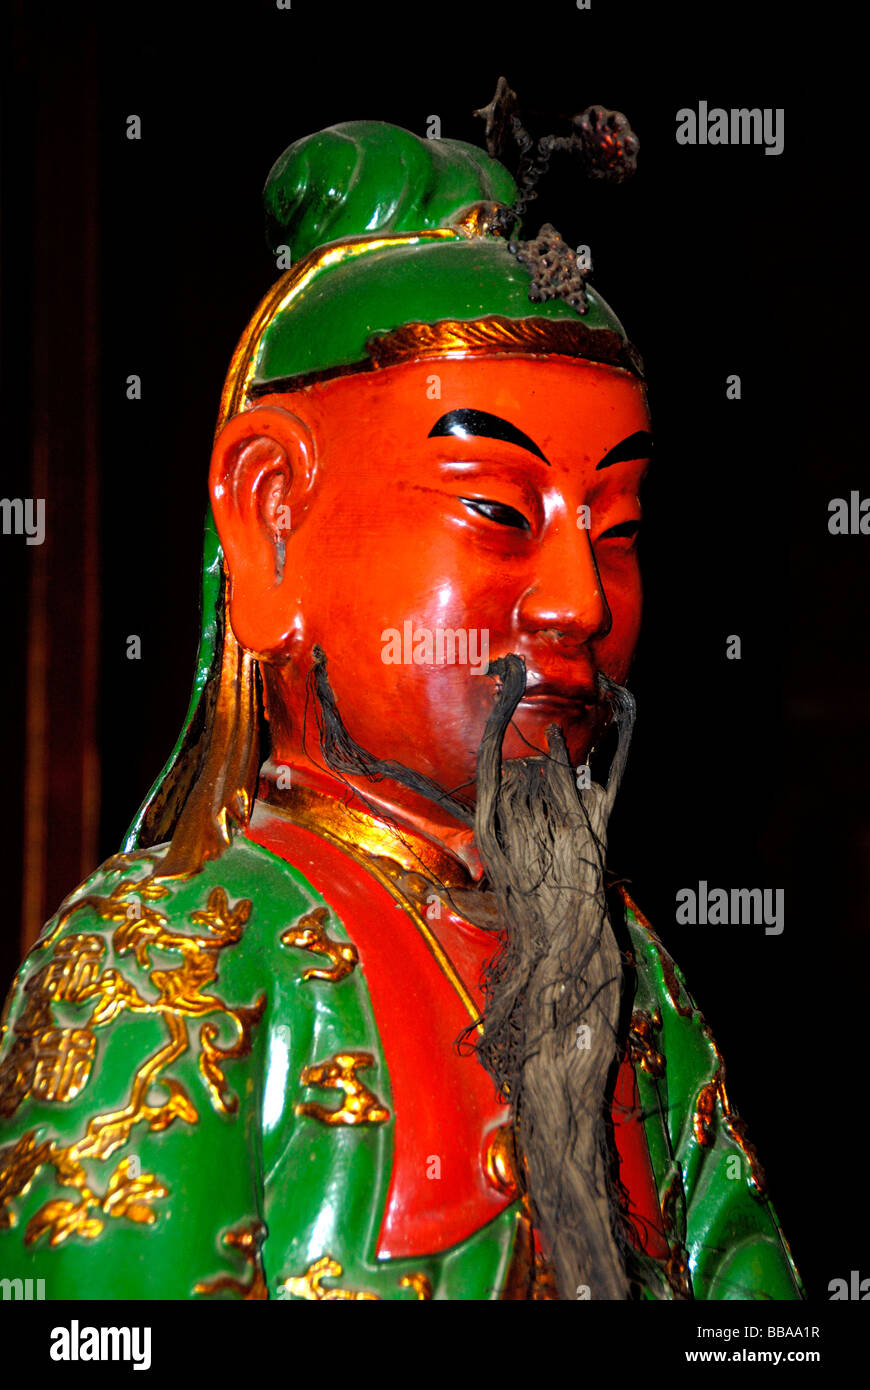 Buddhism, Confucianism, figure with green coat and long beard, Ngoc Son Temple, Hanoi, Vietnam, Southeast Asia, - Stock Image